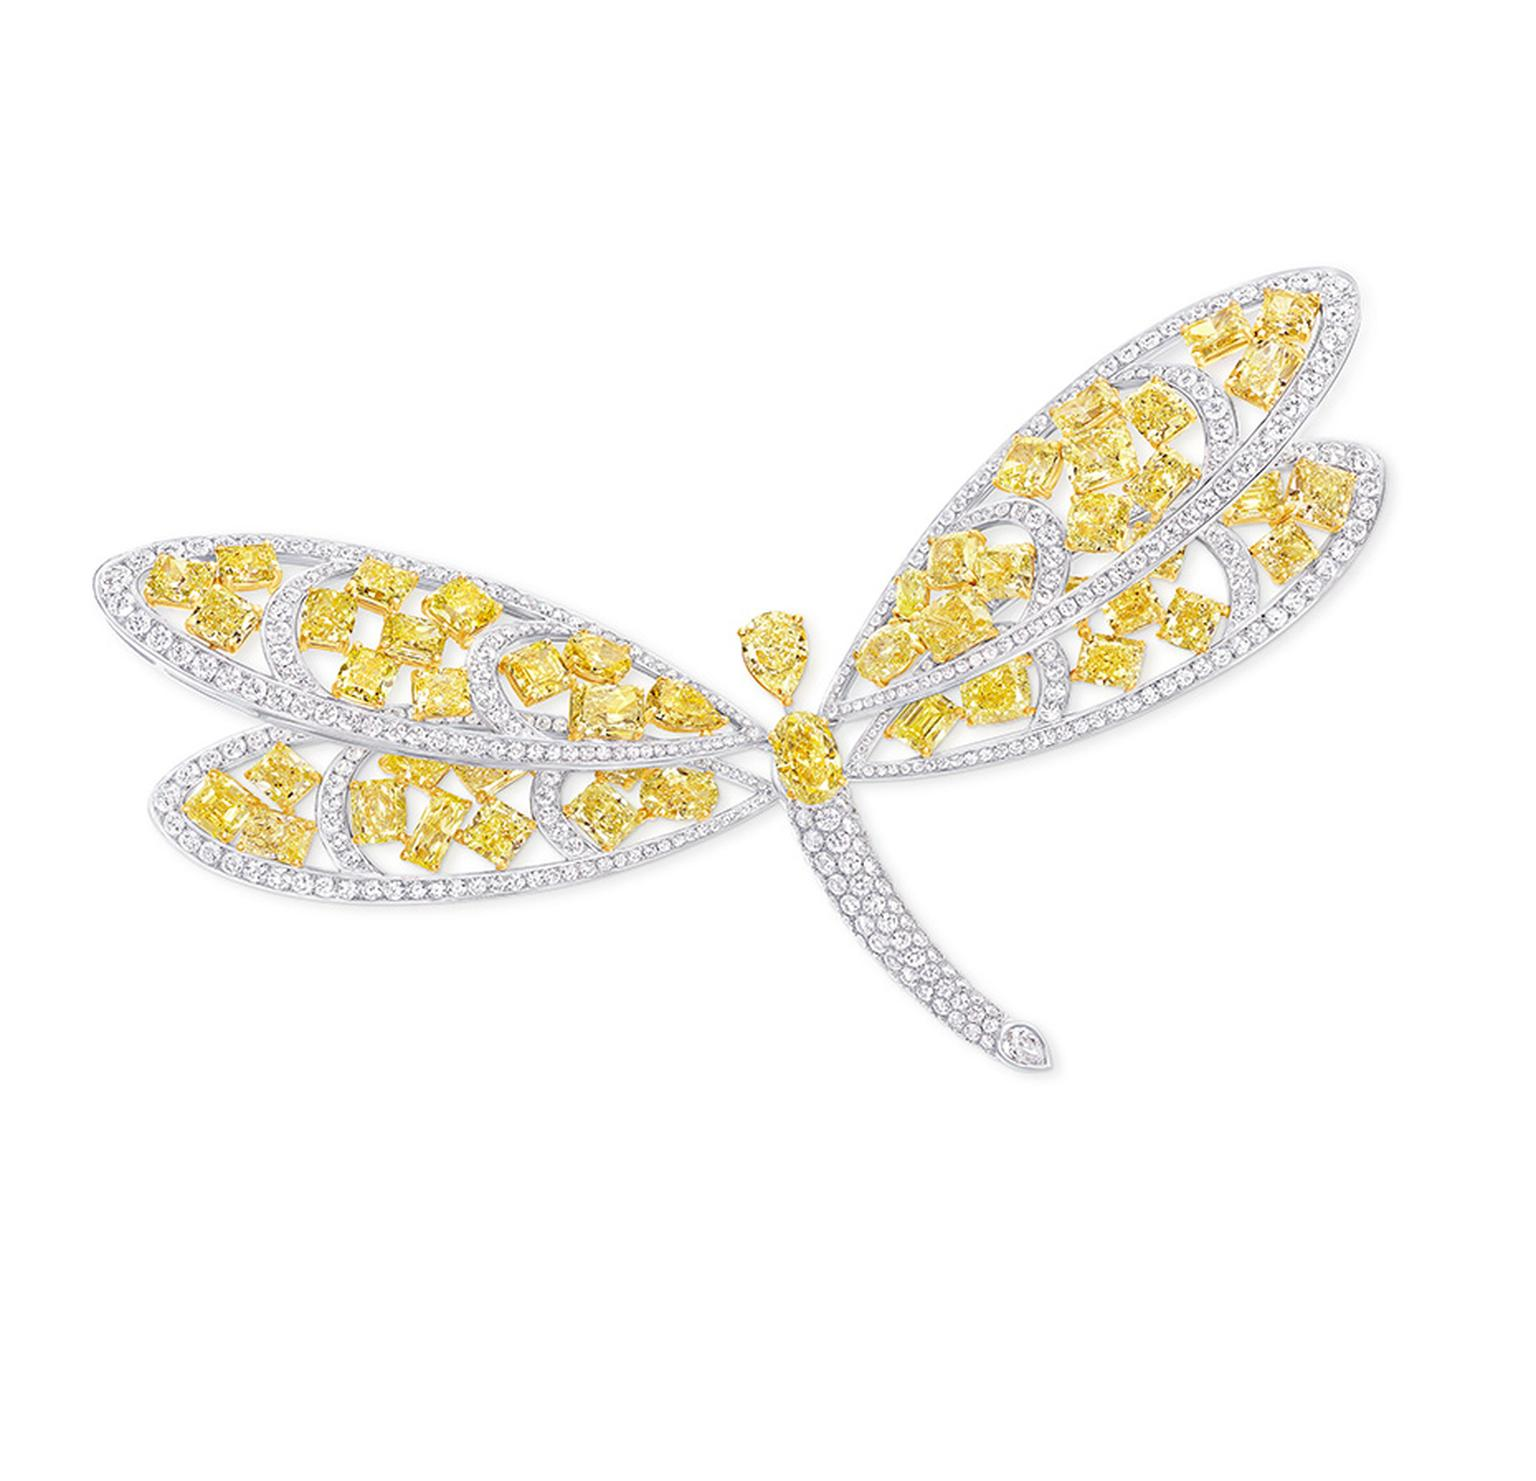 Graff white and yellow diamond butterfly brooch.